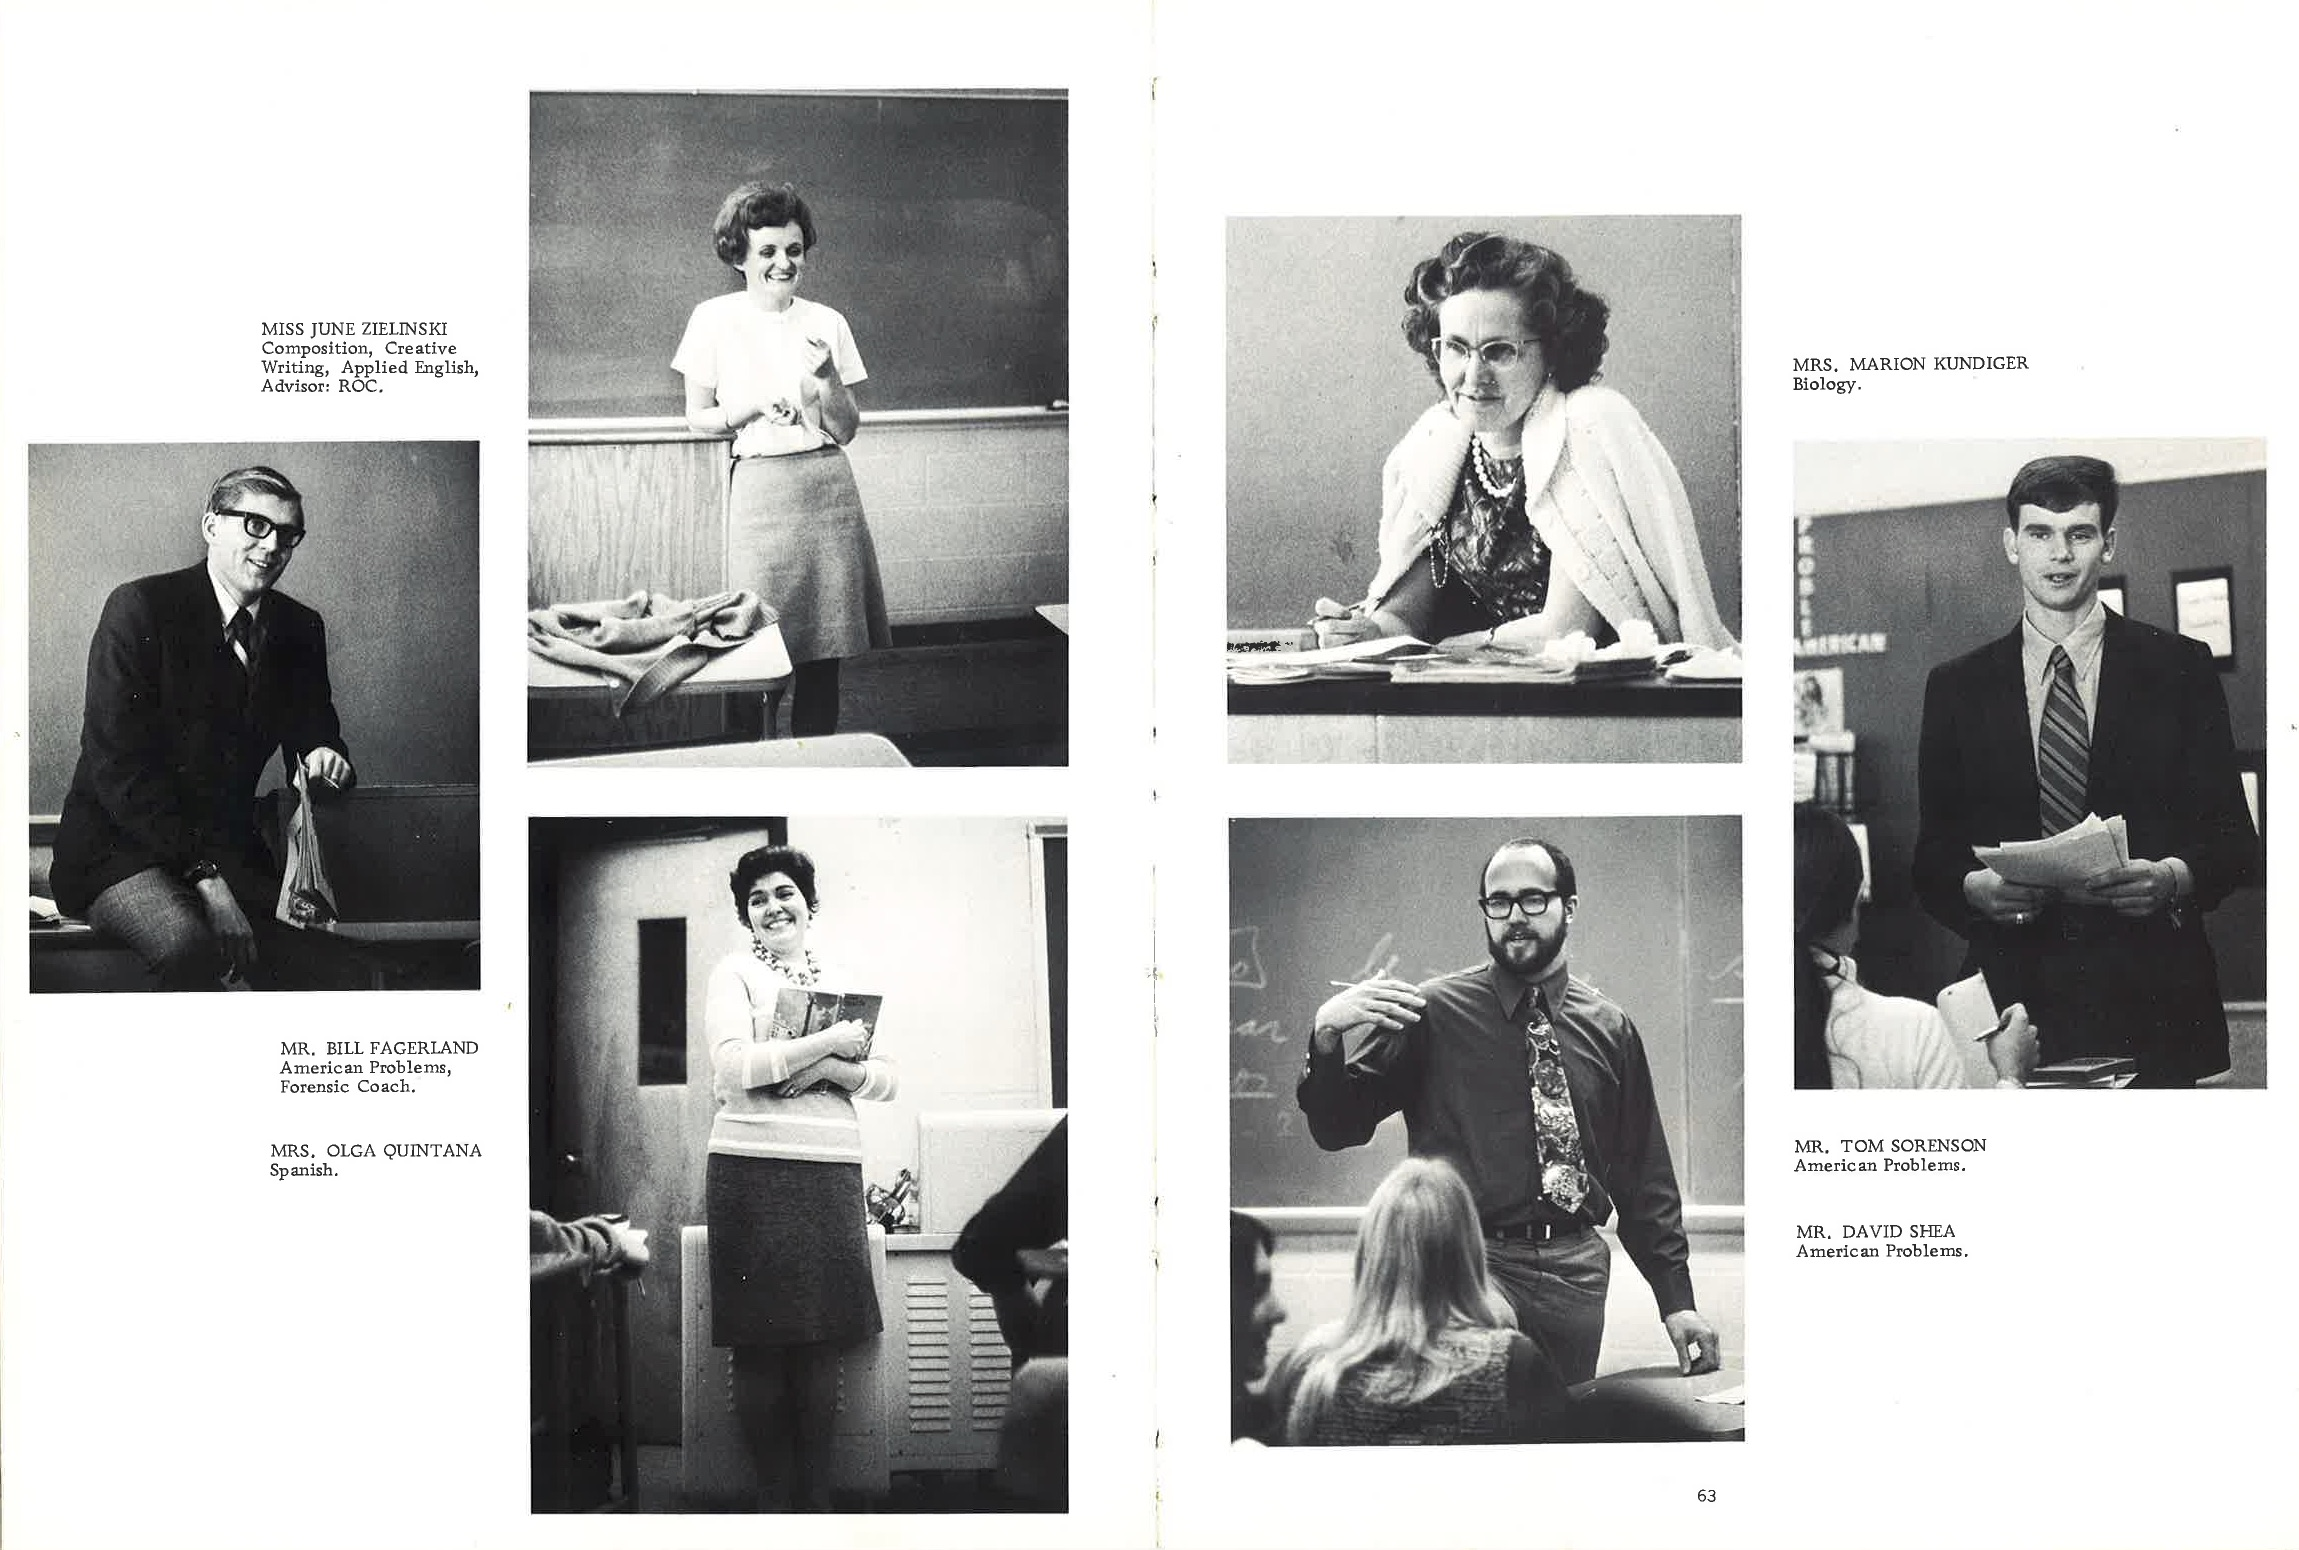 1971_Yearbook_62-63.jpg